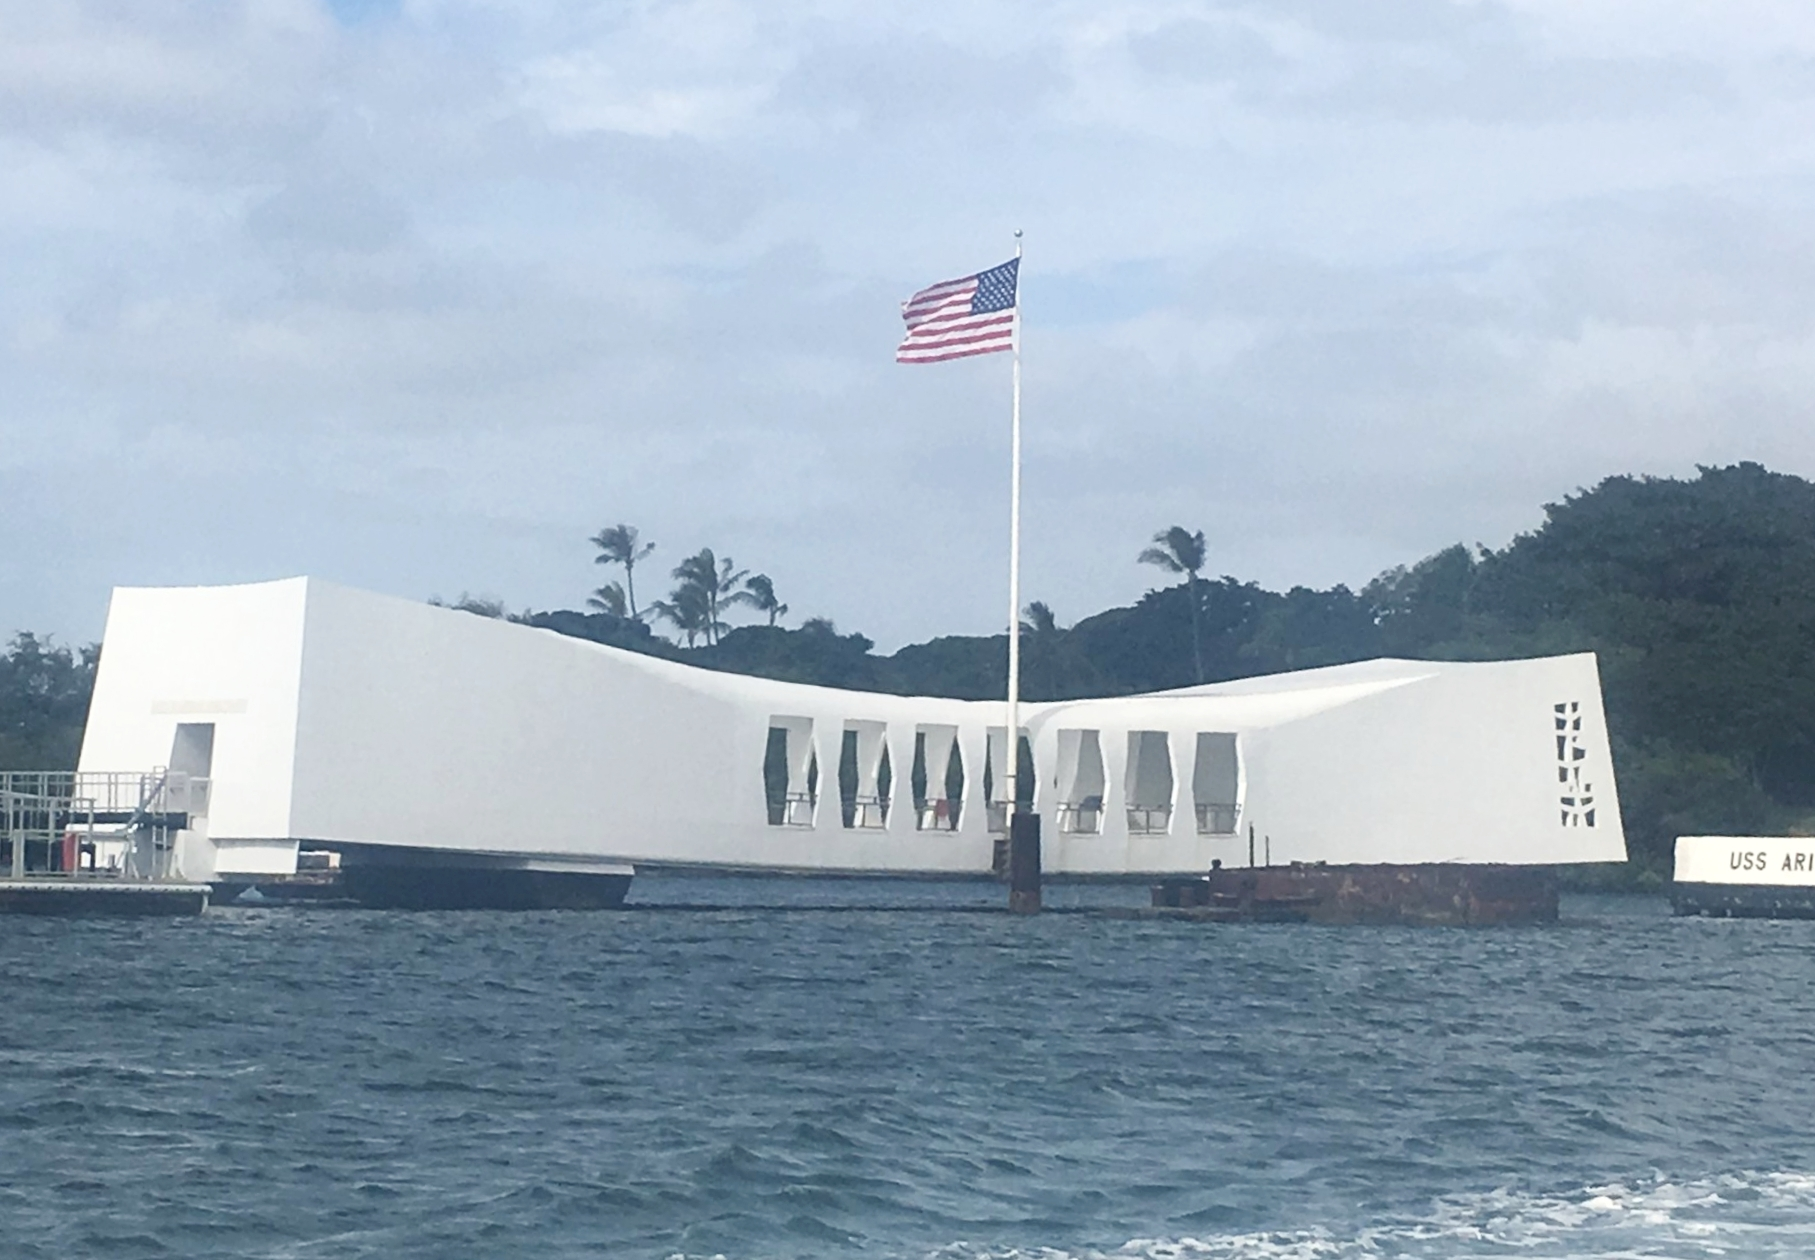 Arizona Memorial at Pearl Harbor